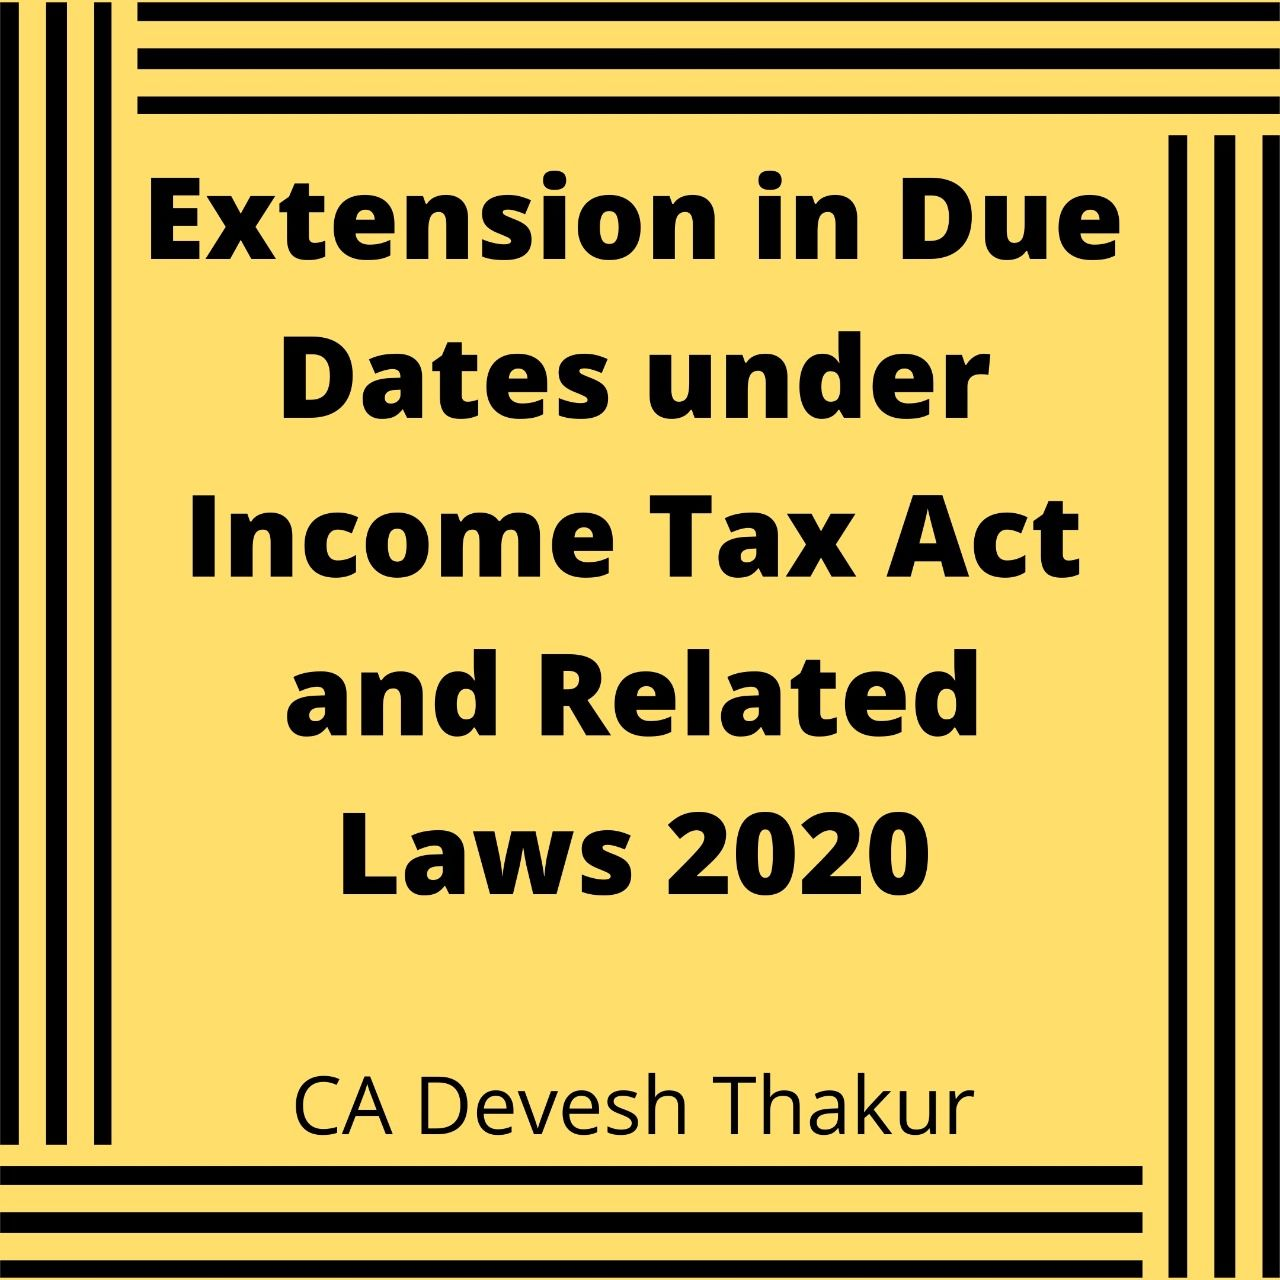 CBDT on 24th June 2020 has issued Notifi. No. 35/2020 on